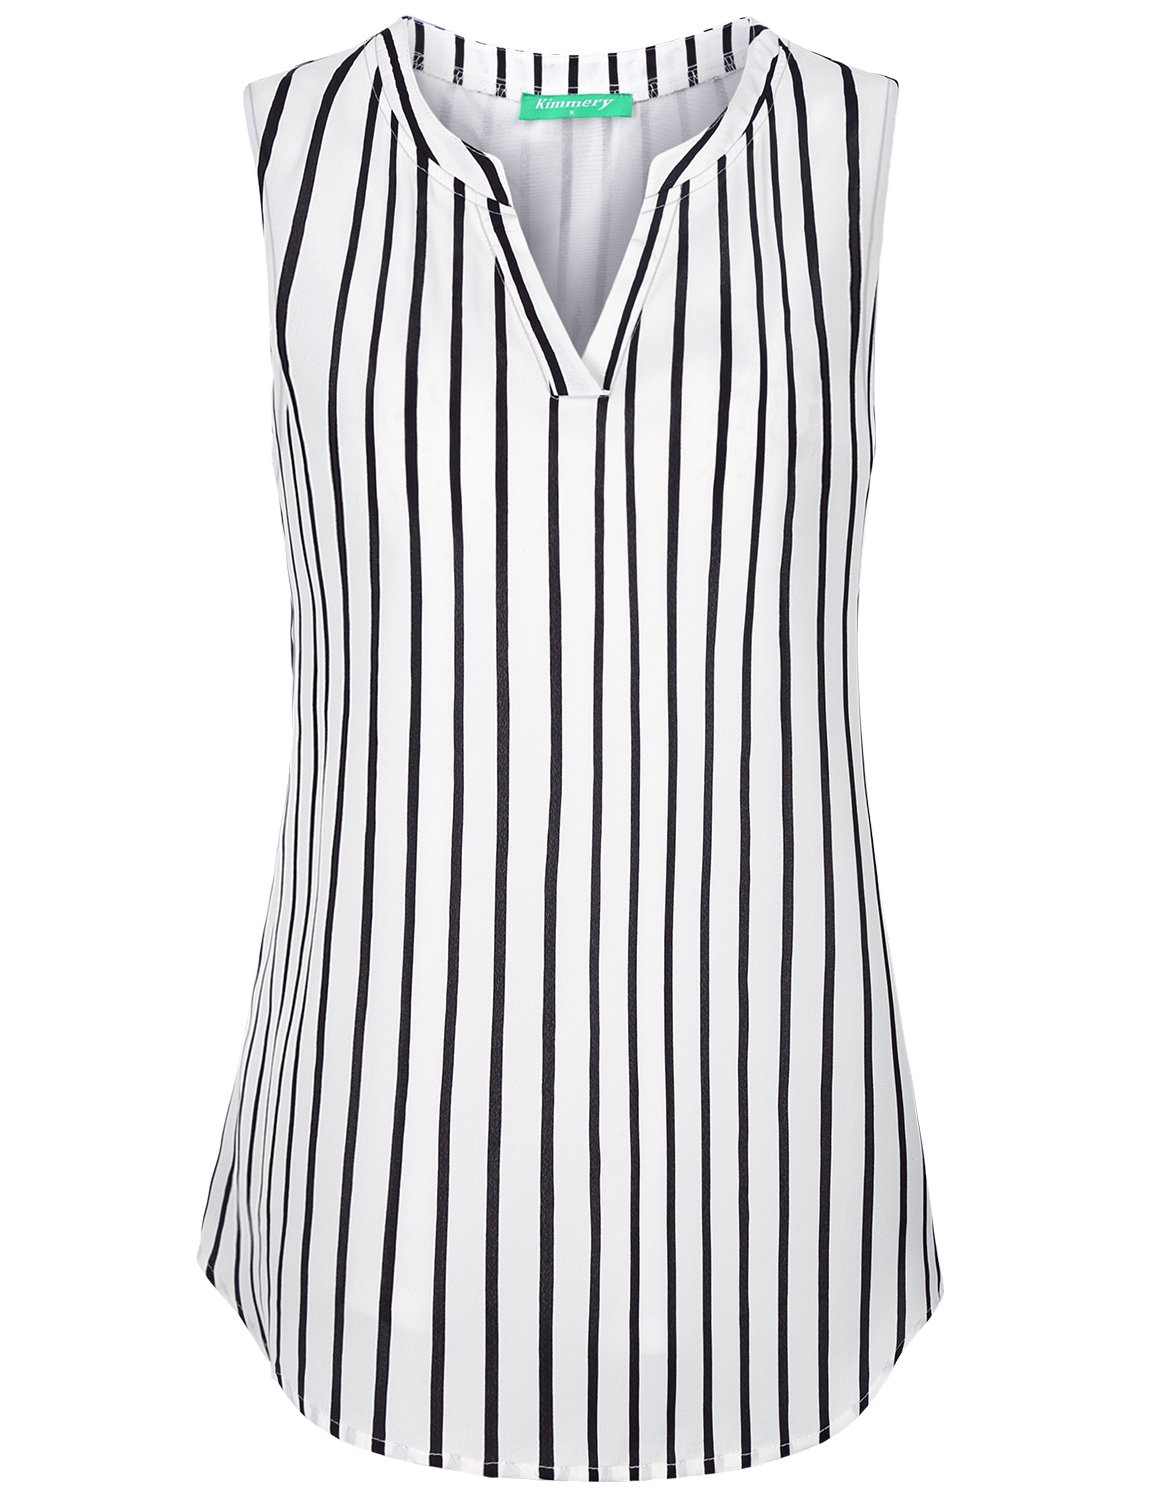 Kimmery Sleeveless Tunics for Women, Ladies Career Tank Tops Mandarin Collar Henley Shirts Sturdy Flowing Charming Lightweight Breathable Durable Formal Wear Layered Top Black Stripes X Large